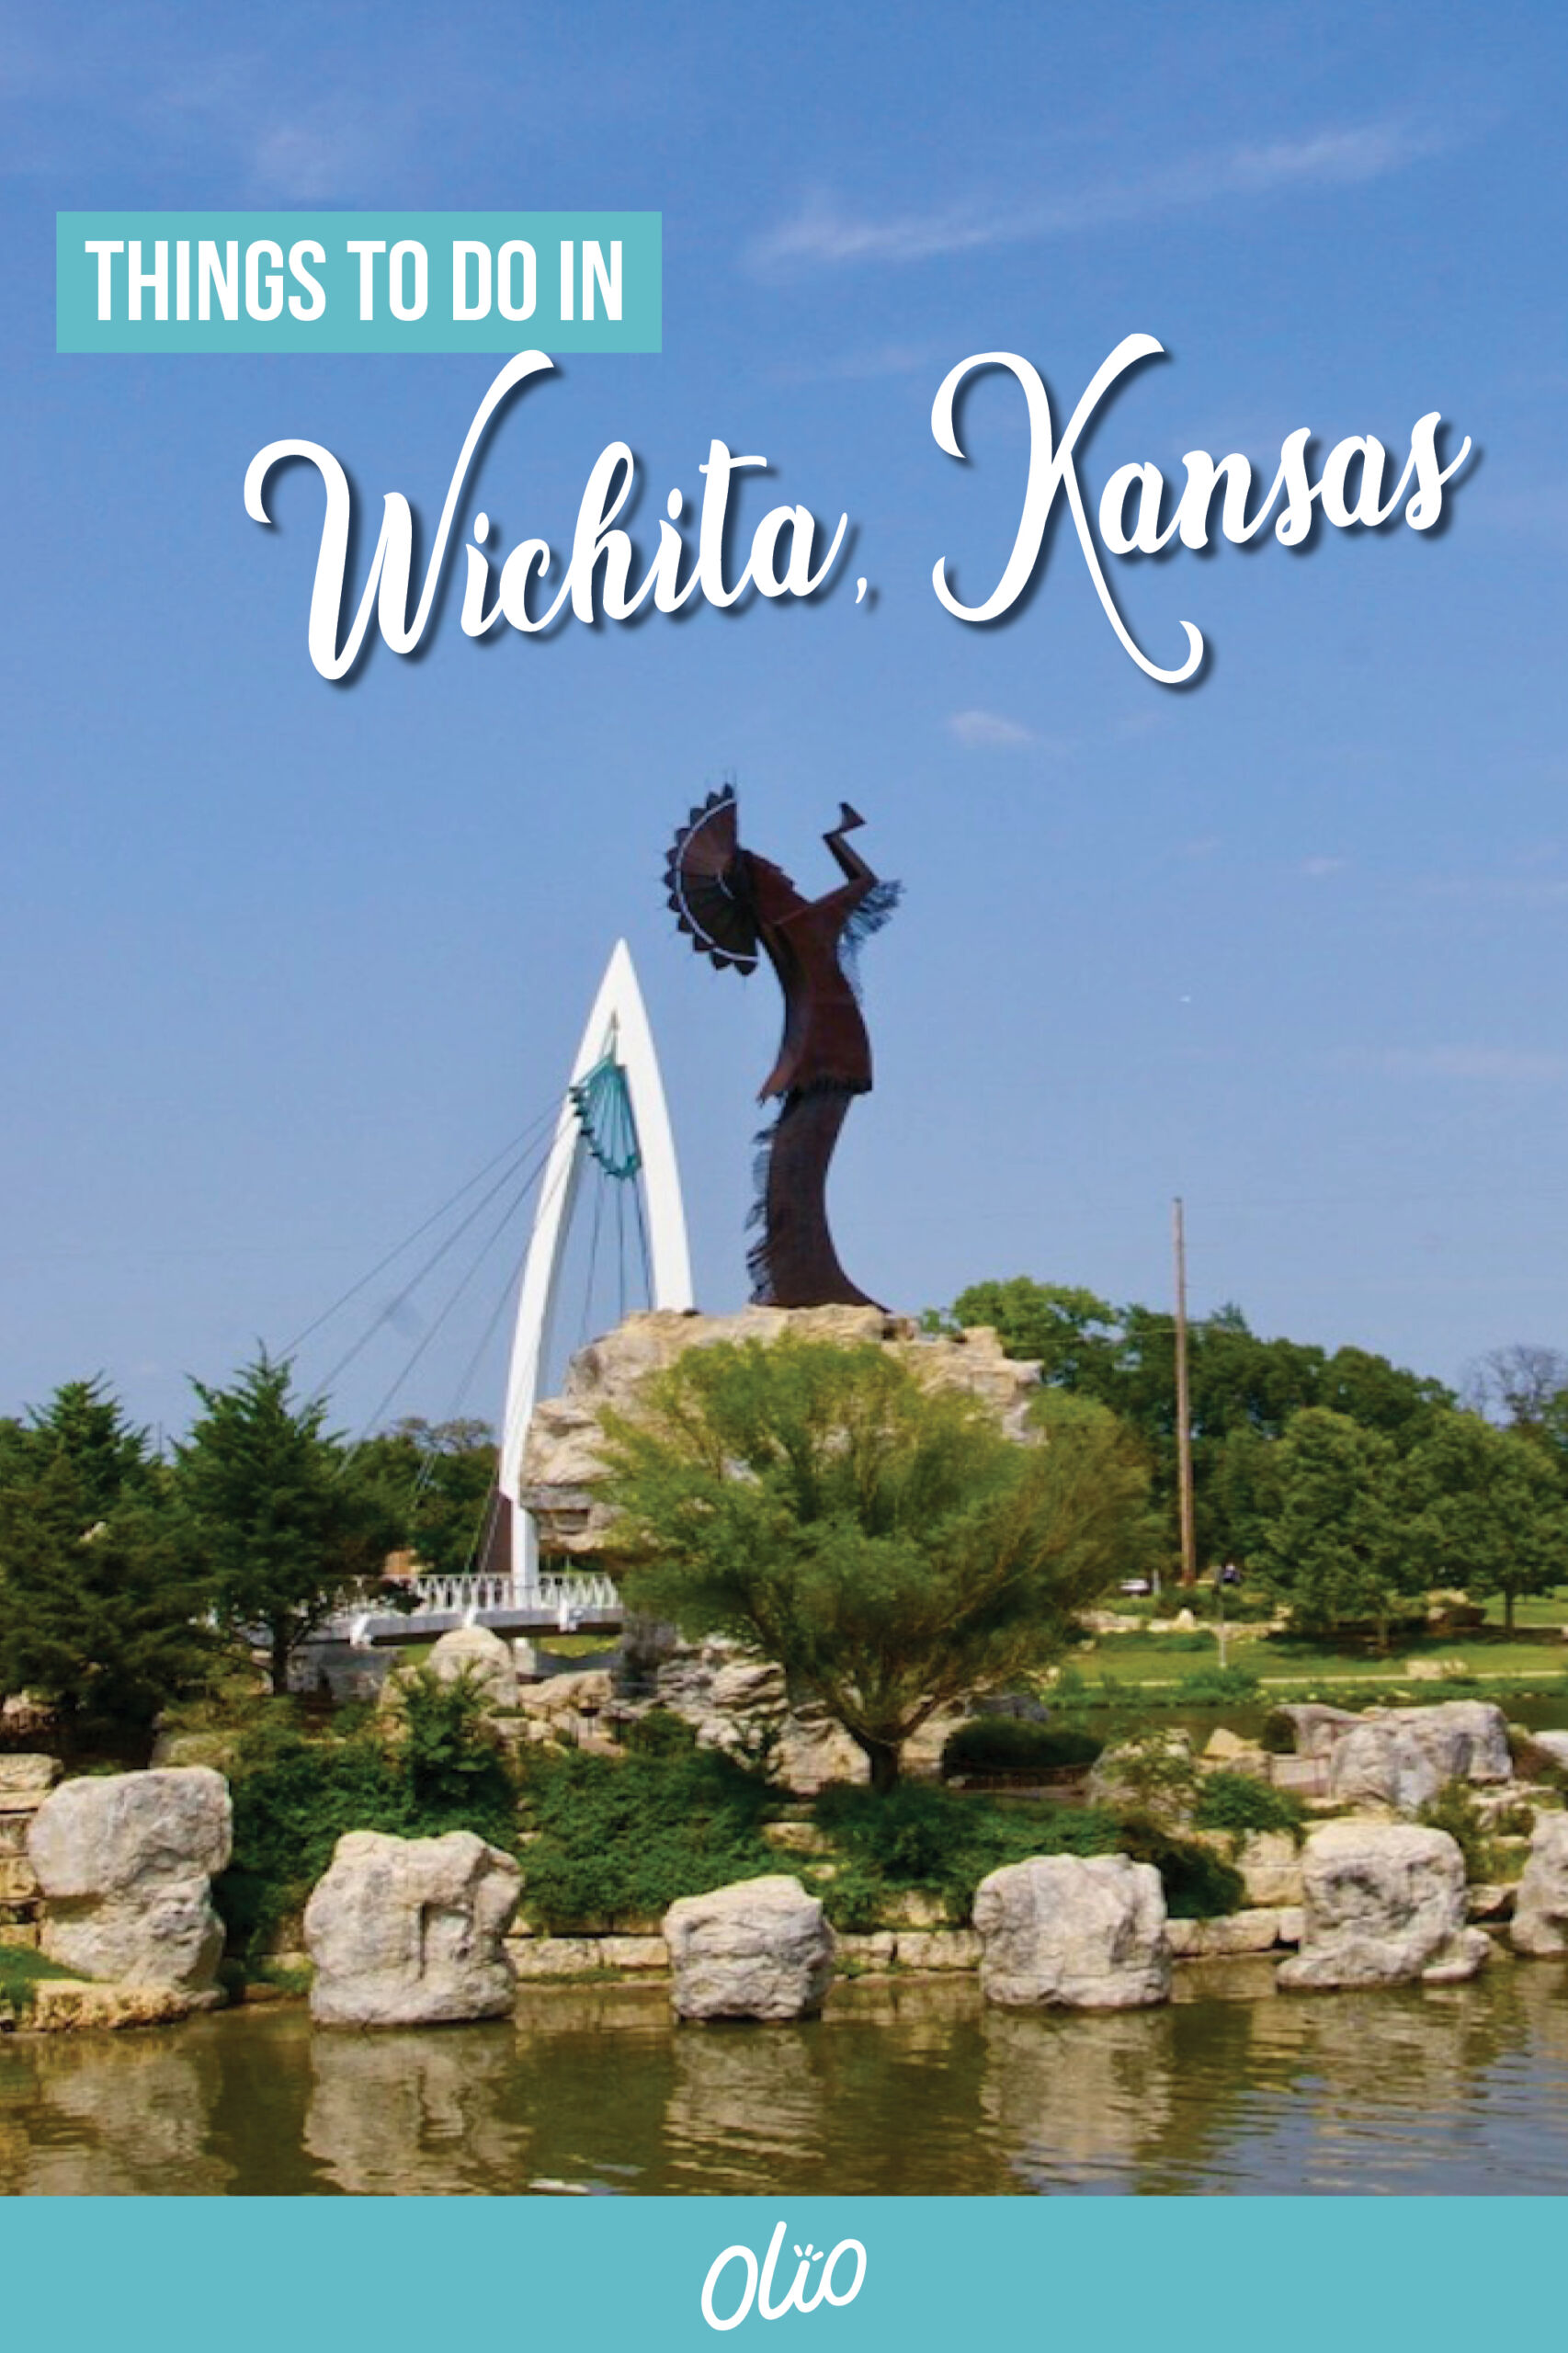 """Before you claim that there's nothing to do in """"flyover country,"""" take the time to look and discover these15 fantastic things to do in Wichita, Kansas. From visiting the Keeper of the Plains to enjoying amazing restaurants and breweries and more, there are lots of things to see and places to visit in Wichita. #Wichita #Kansas #Midwest #MidwestTravel"""